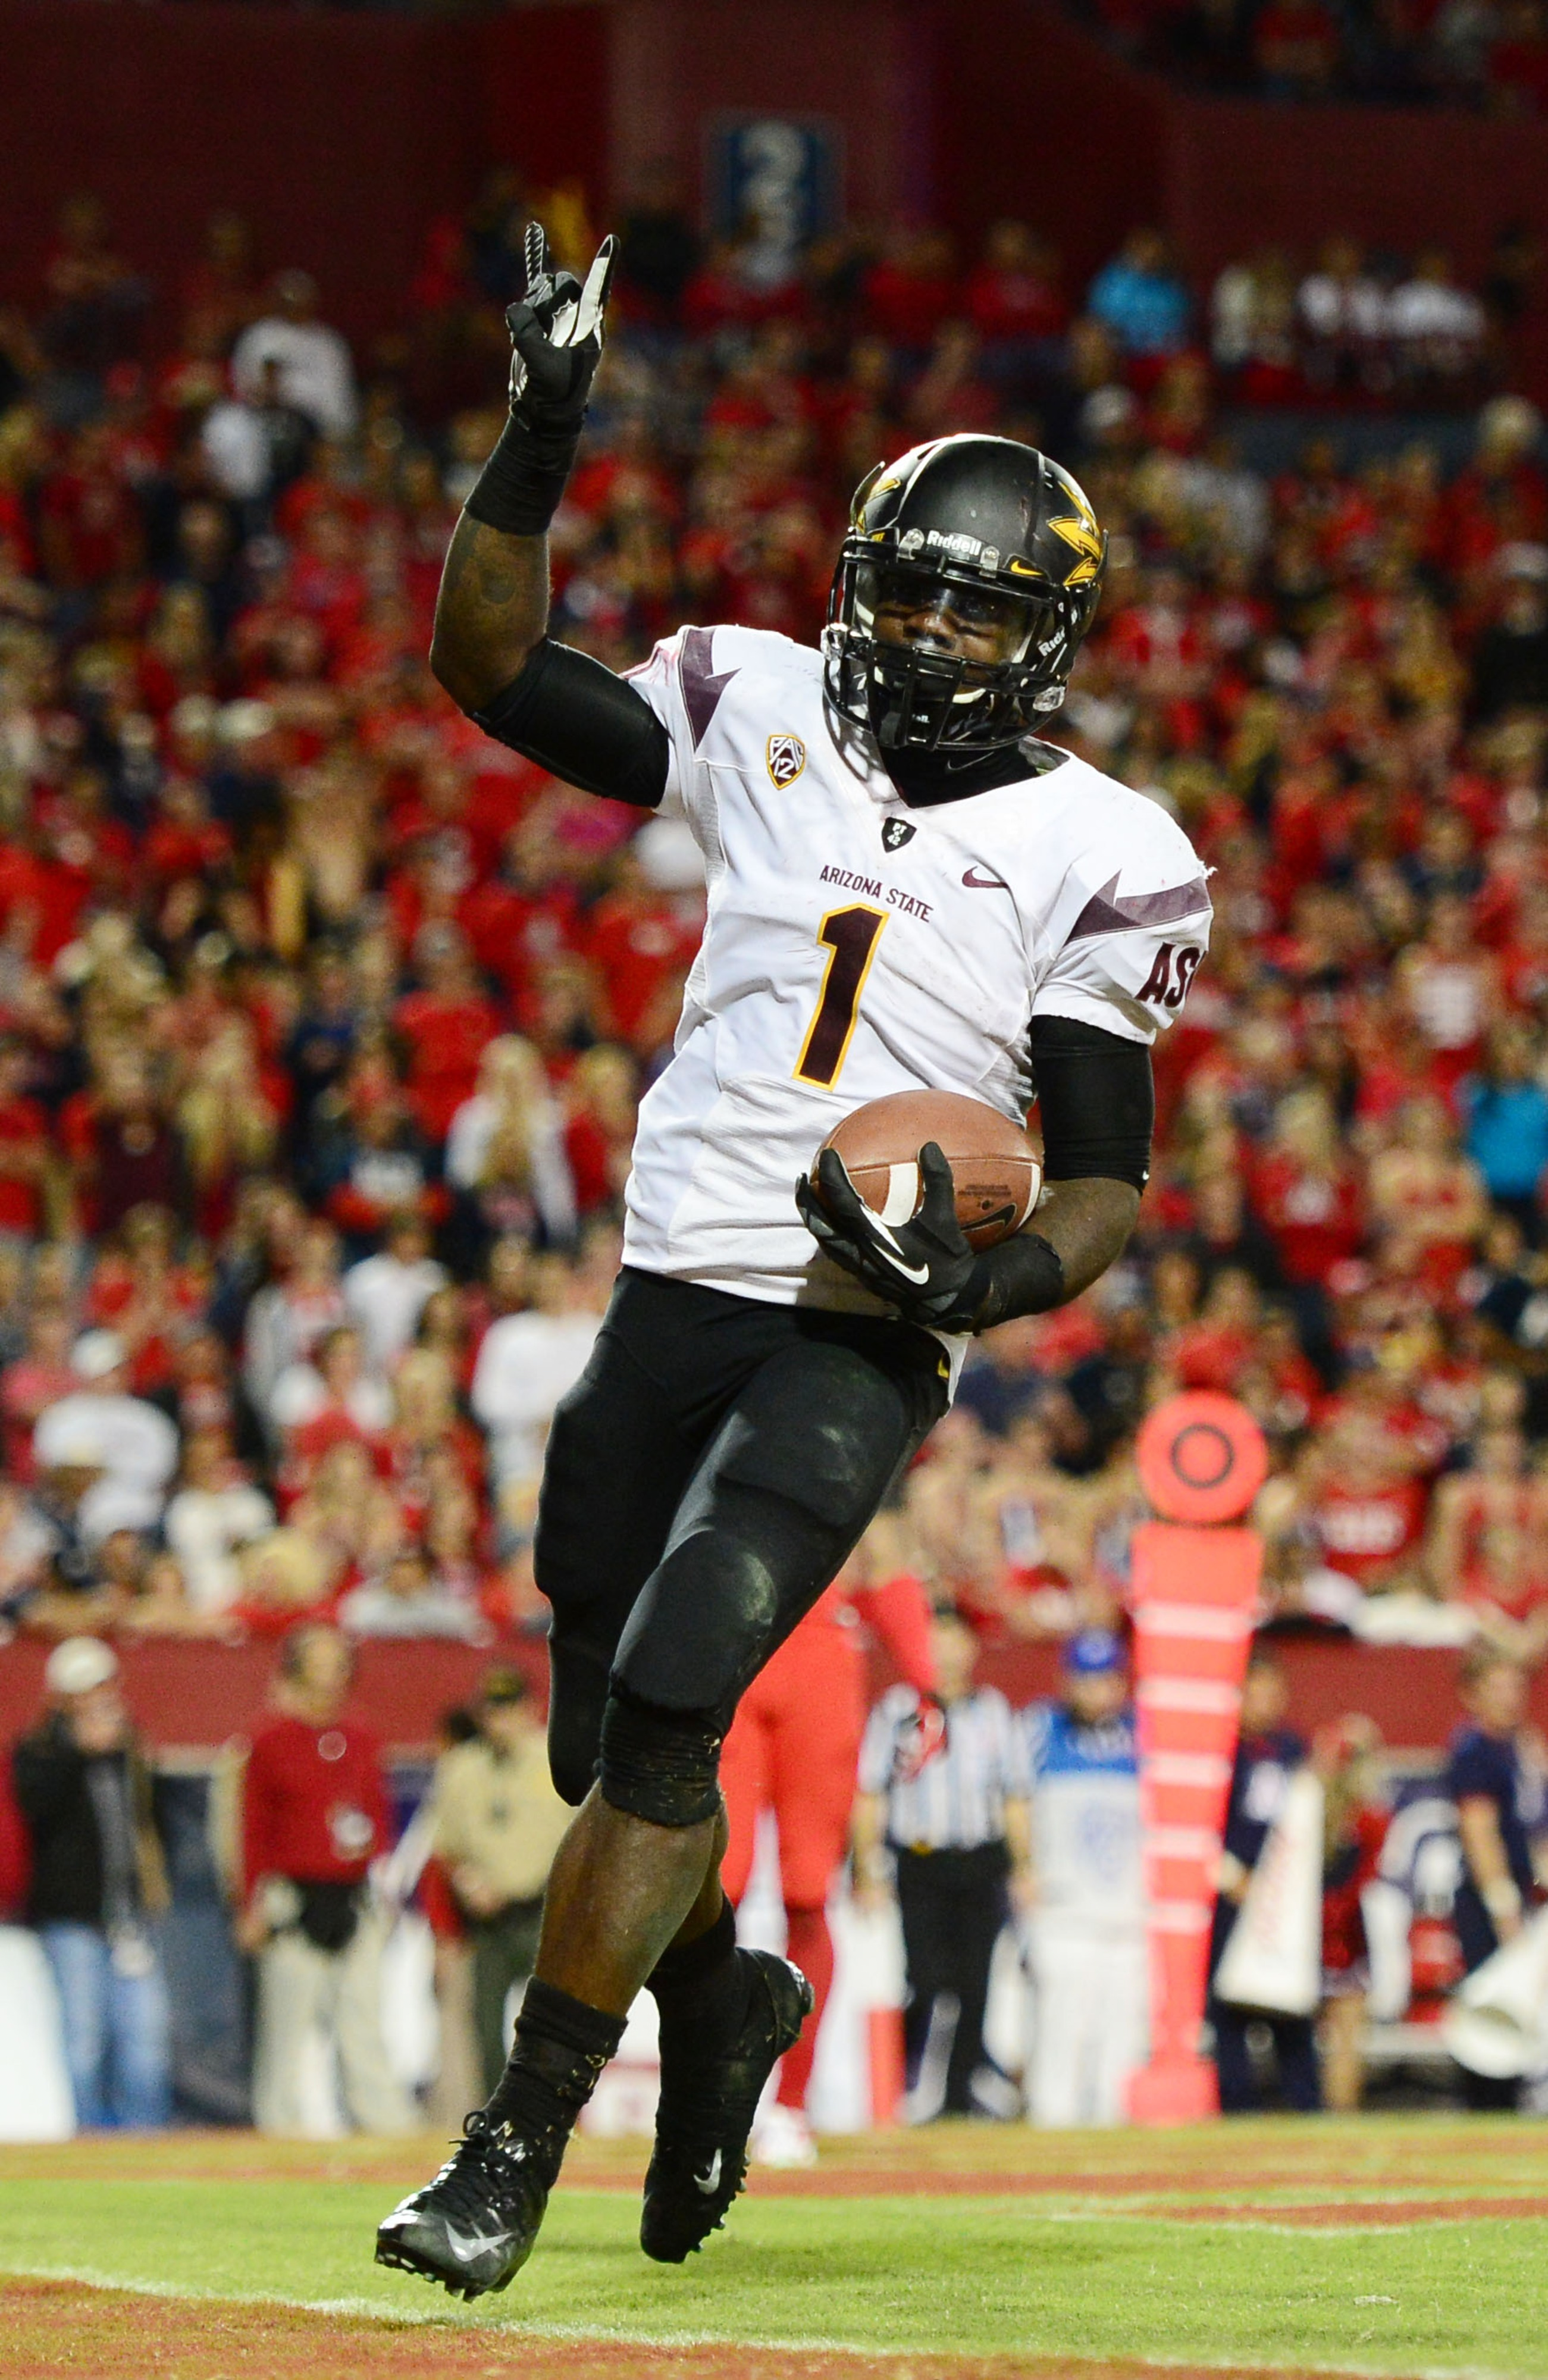 Marion Grice celebrates his best performance of the season in the Territorial Cup win